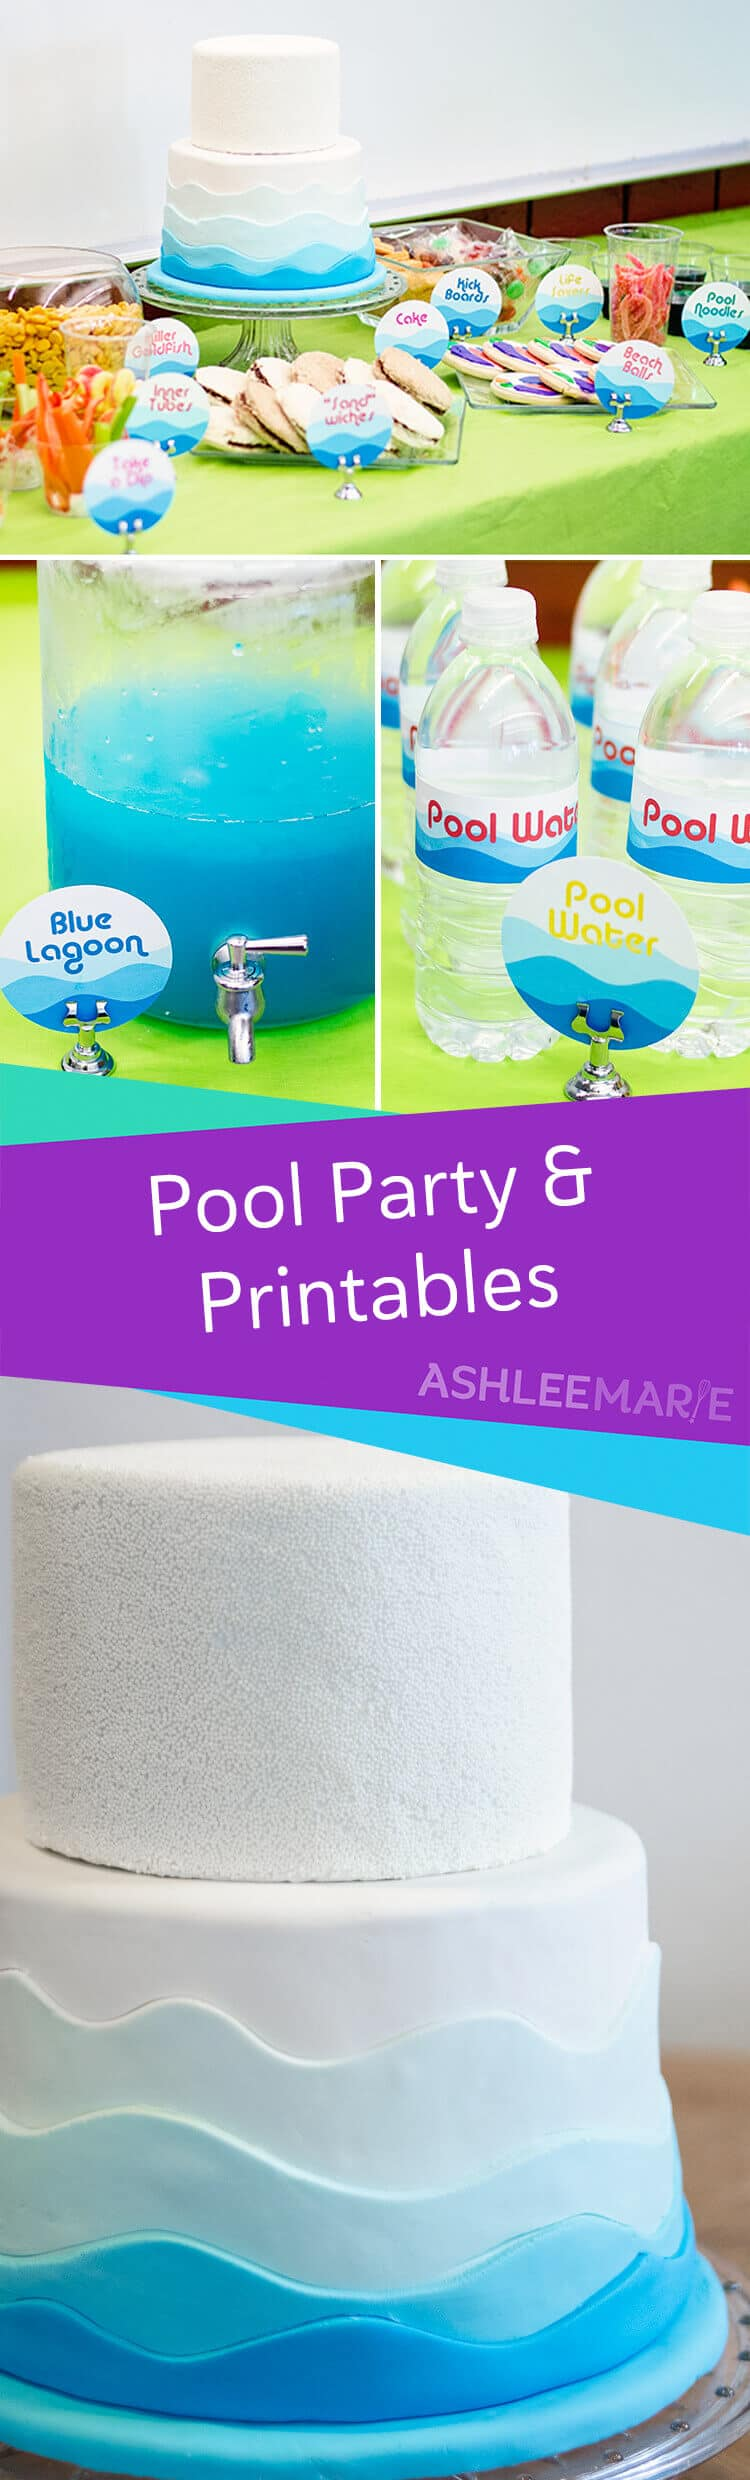 pool party and printables